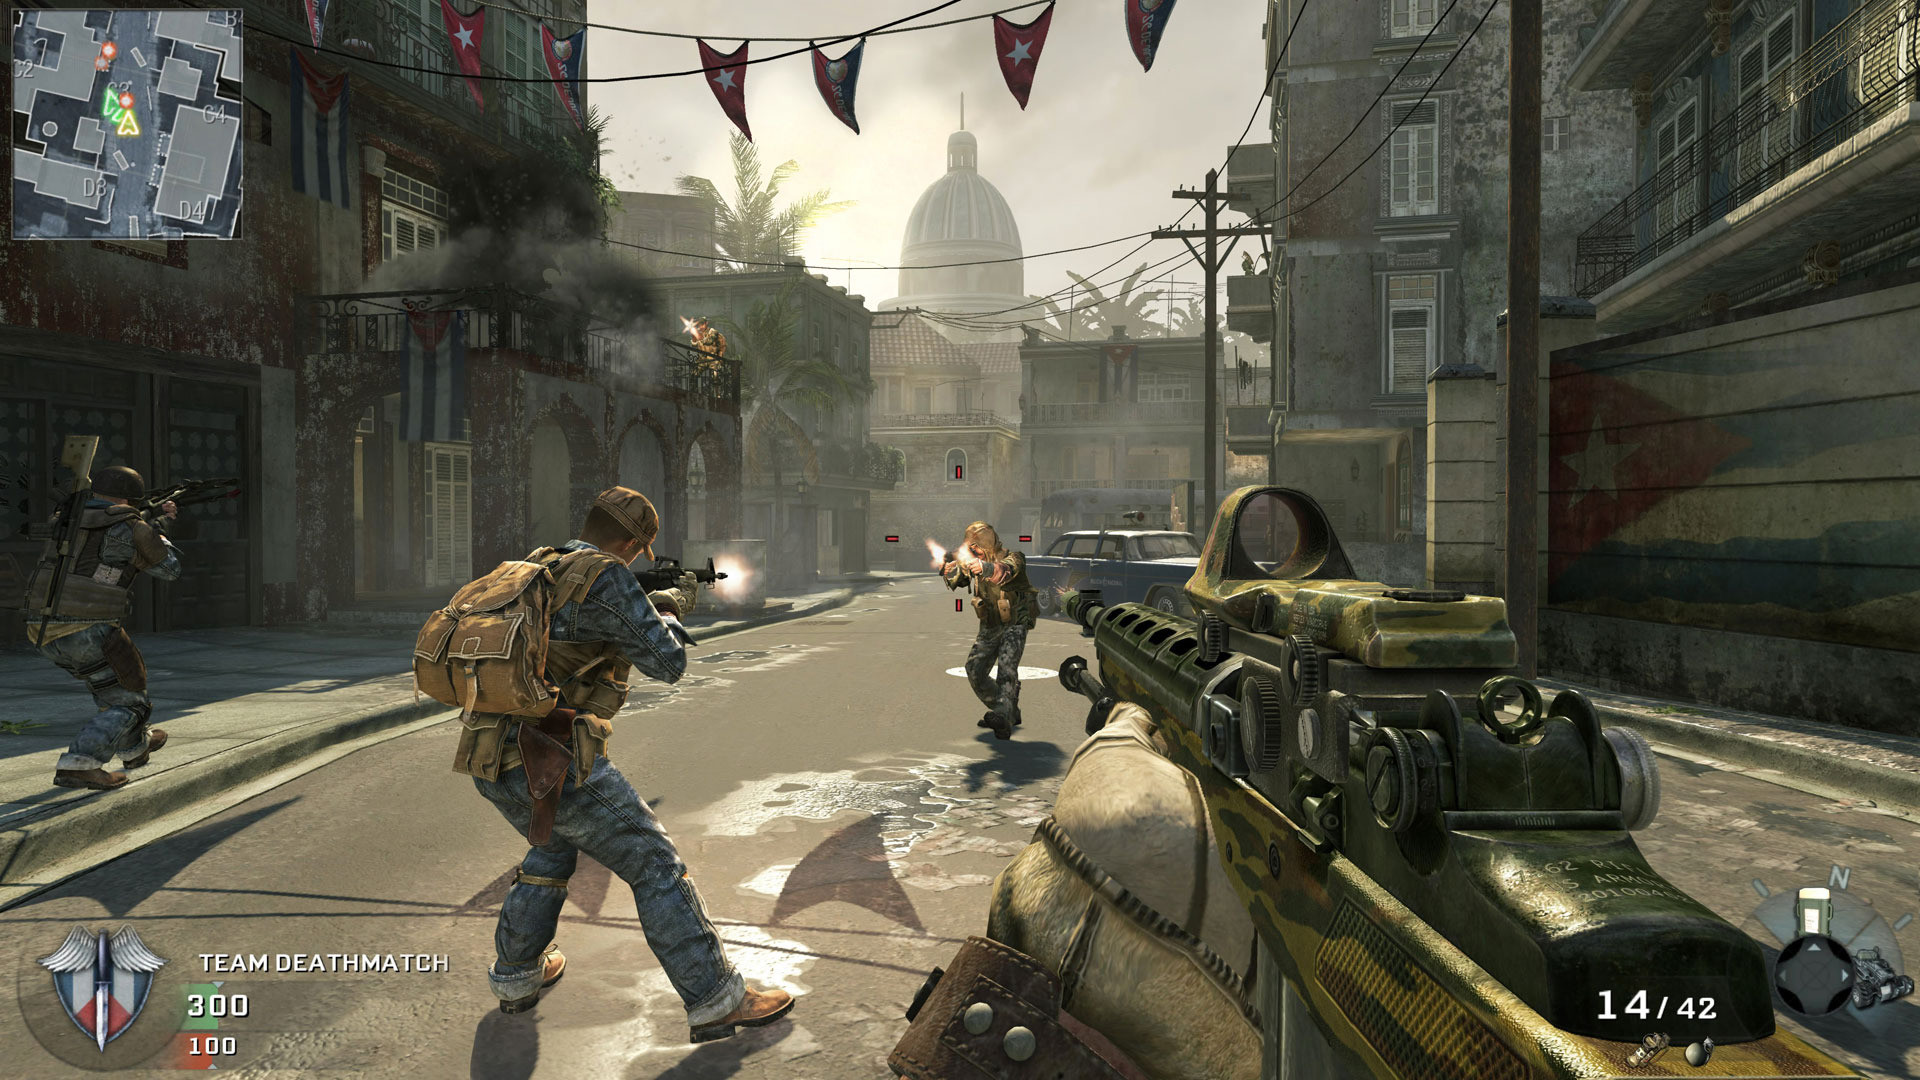 ArtStation - Call of Duty Level Design and Environment Art, Will ...